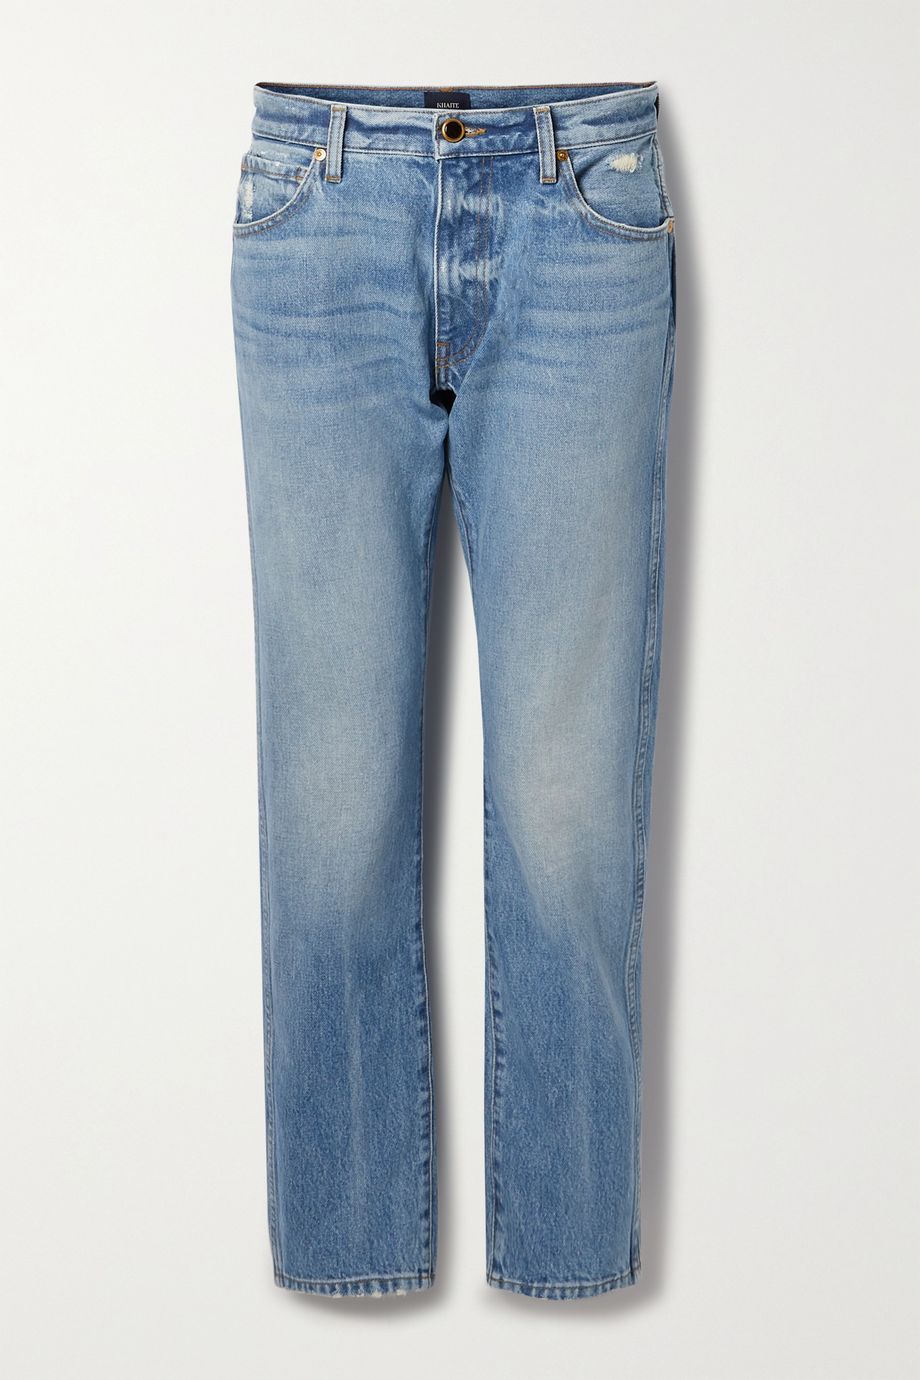 Khaite Kyle distressed low-rise straight-leg jeans